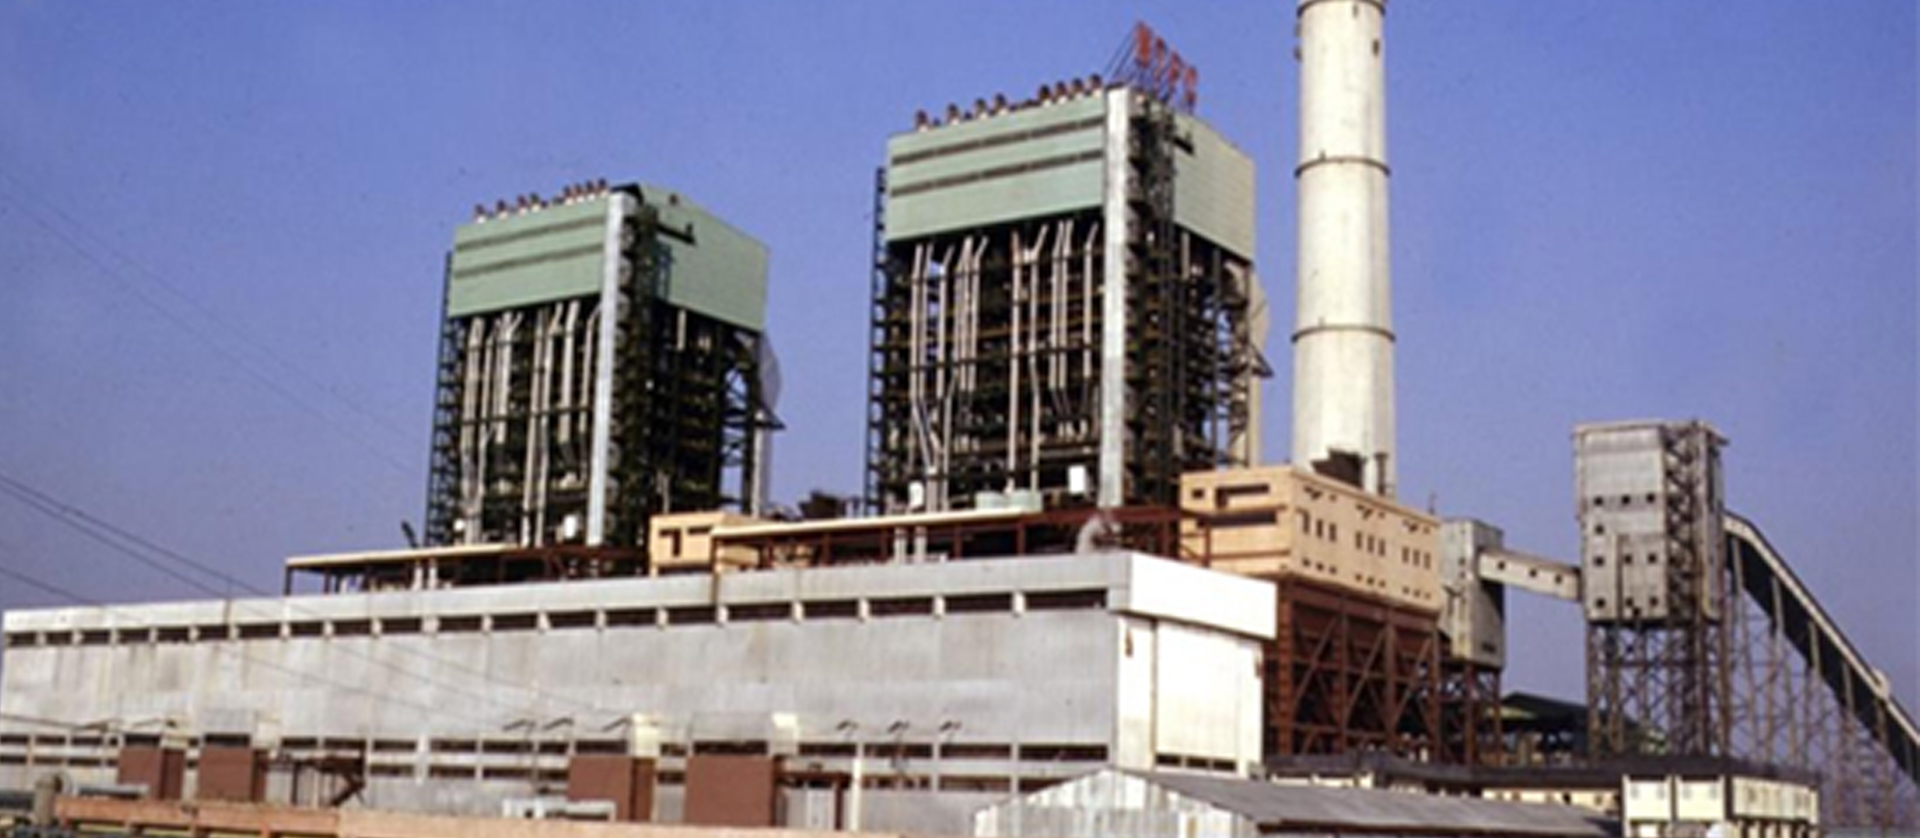 Talcher Power Plant PH-1: Talcher, Odisha